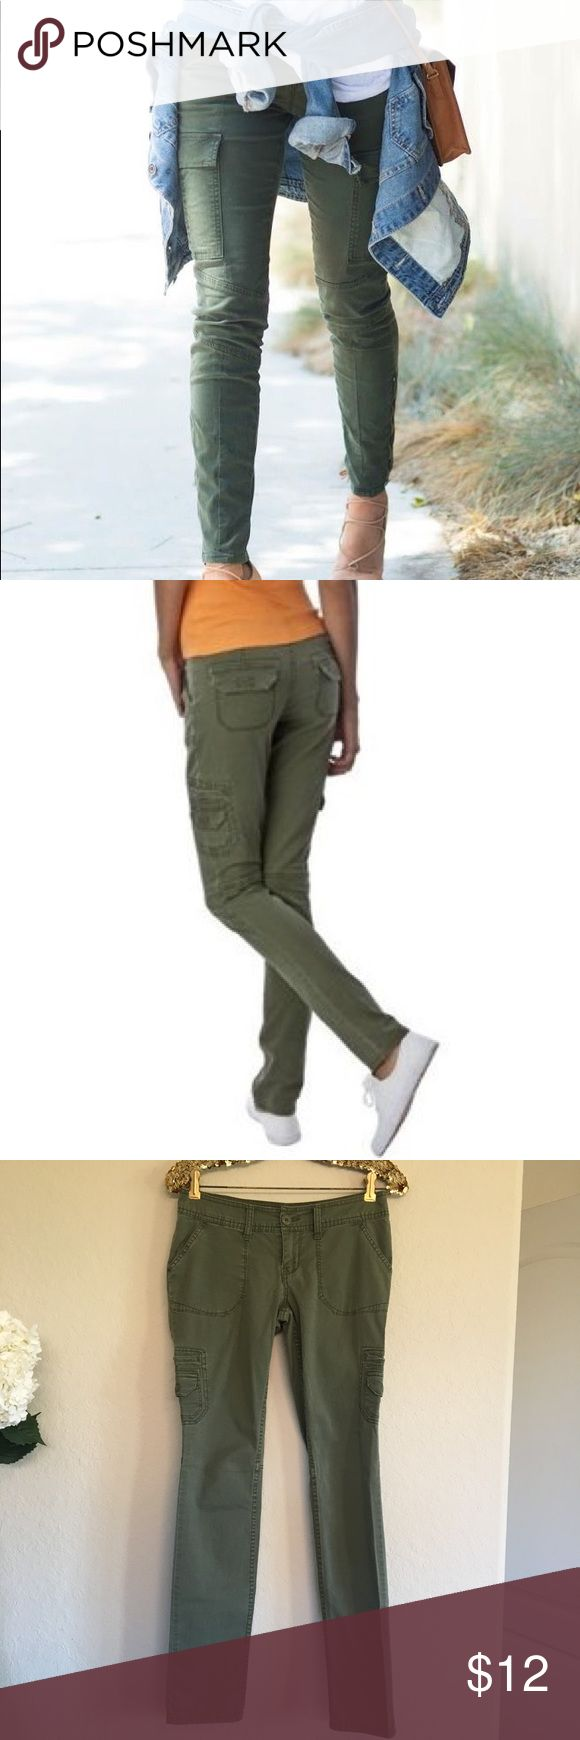 Mossimo Hunter Green Pants These Mossimo hunter green pants are in great used condition and perfect for the fall season! They have a little wear on one of the knees, but it's not noticeable.  🚭 From a smoke-free home ❌ No trades or off PoshMark sales 🛍 Bundles welcome and encouraged 👌🏻 Reasonable offers welcome ⚡️ Same/next day shipping 🌬 All items are steamed before shipping Mossimo Supply Co Pants Skinny